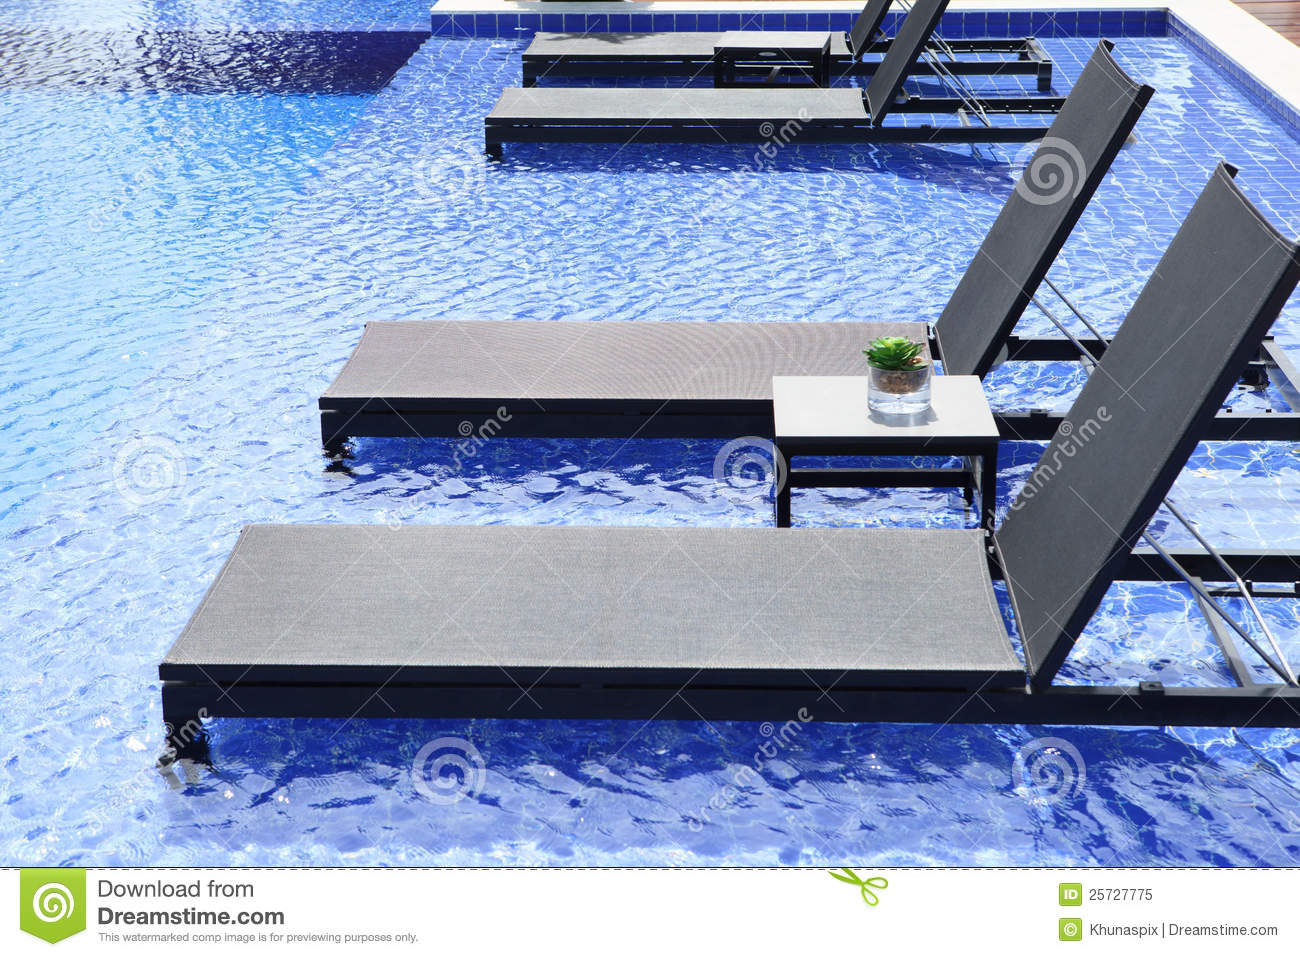 Swimming Pool And Chairs Bed With Blue Water Royalty Free Stock Image